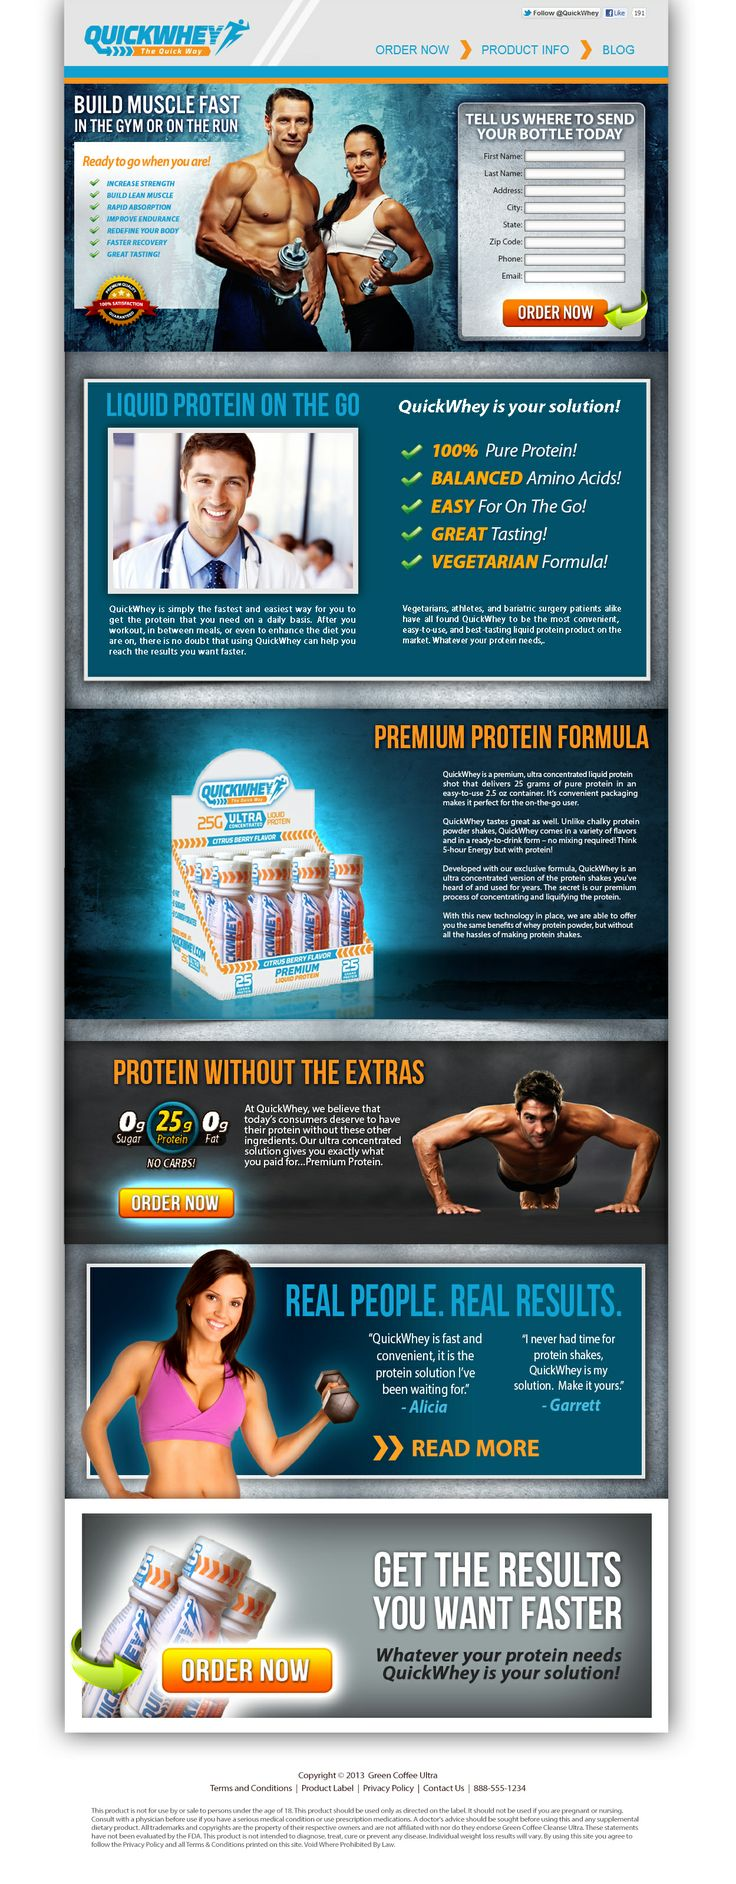 Quick Whey Landing page.